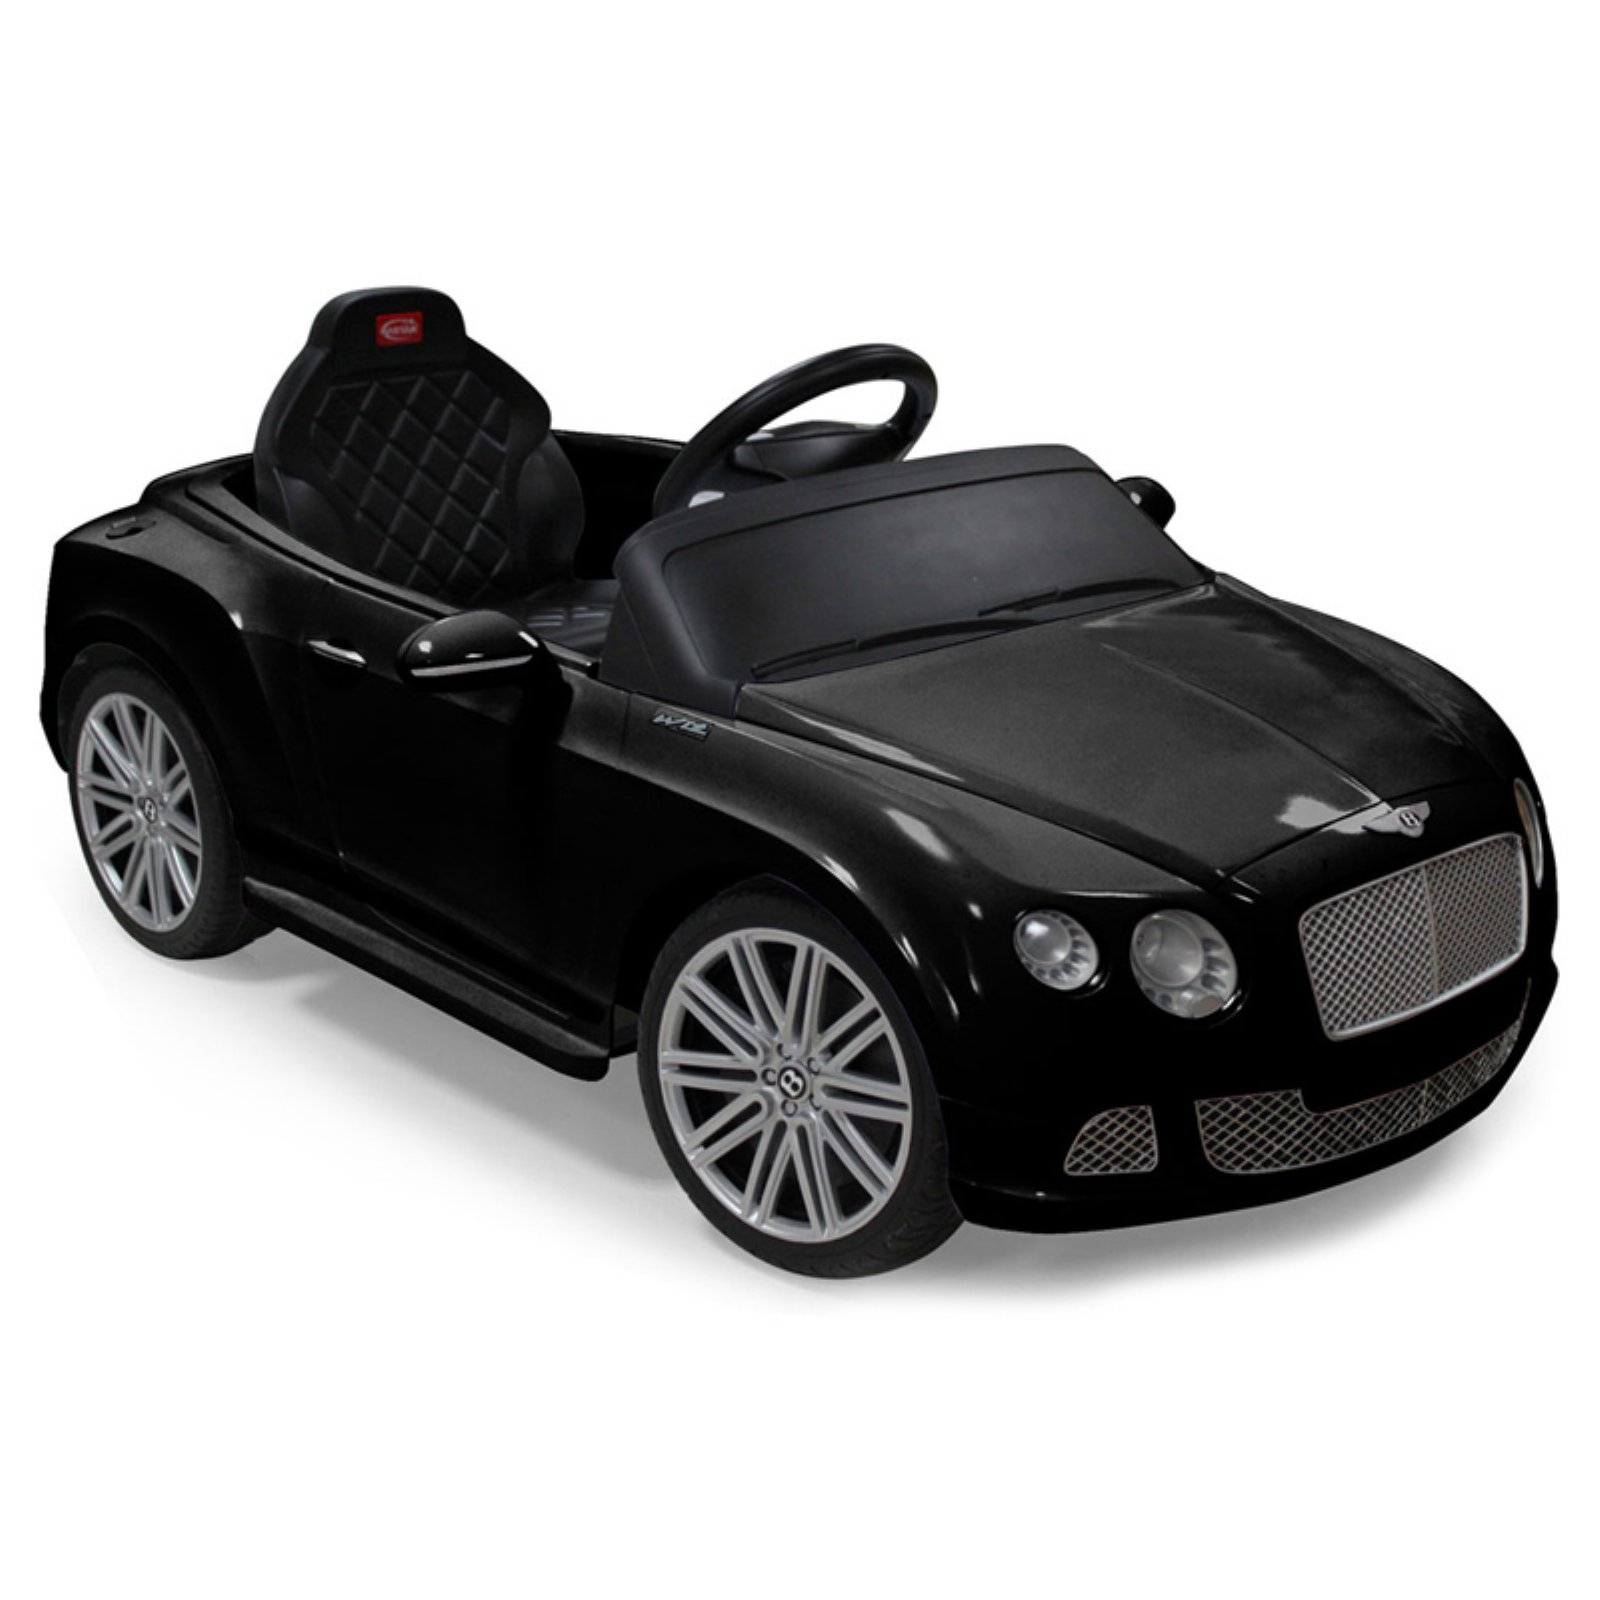 Rastar Bentley GTC Remote-Controlled 12V Battery Powered Ride-On Car, Black